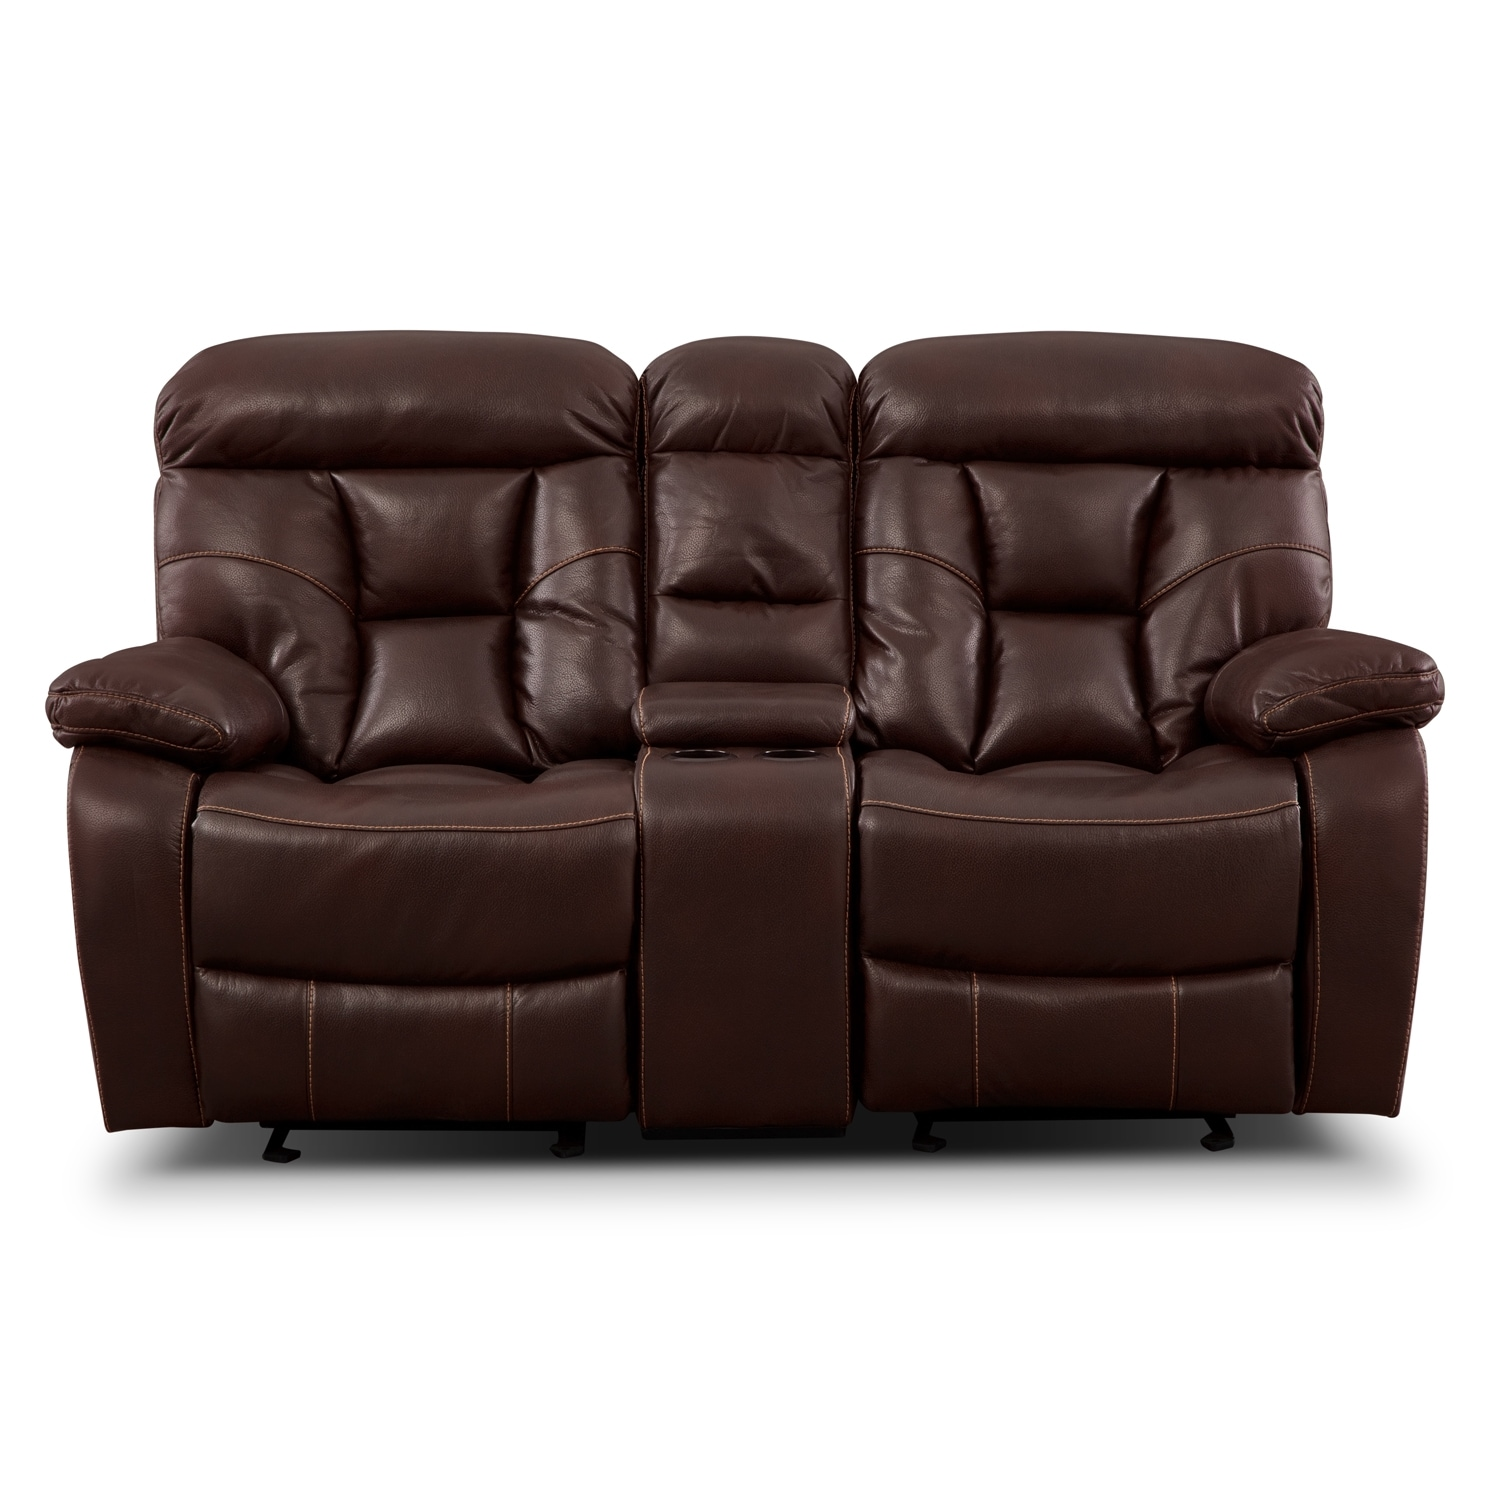 Wichita Java Glider Reclining Loveseat With Console